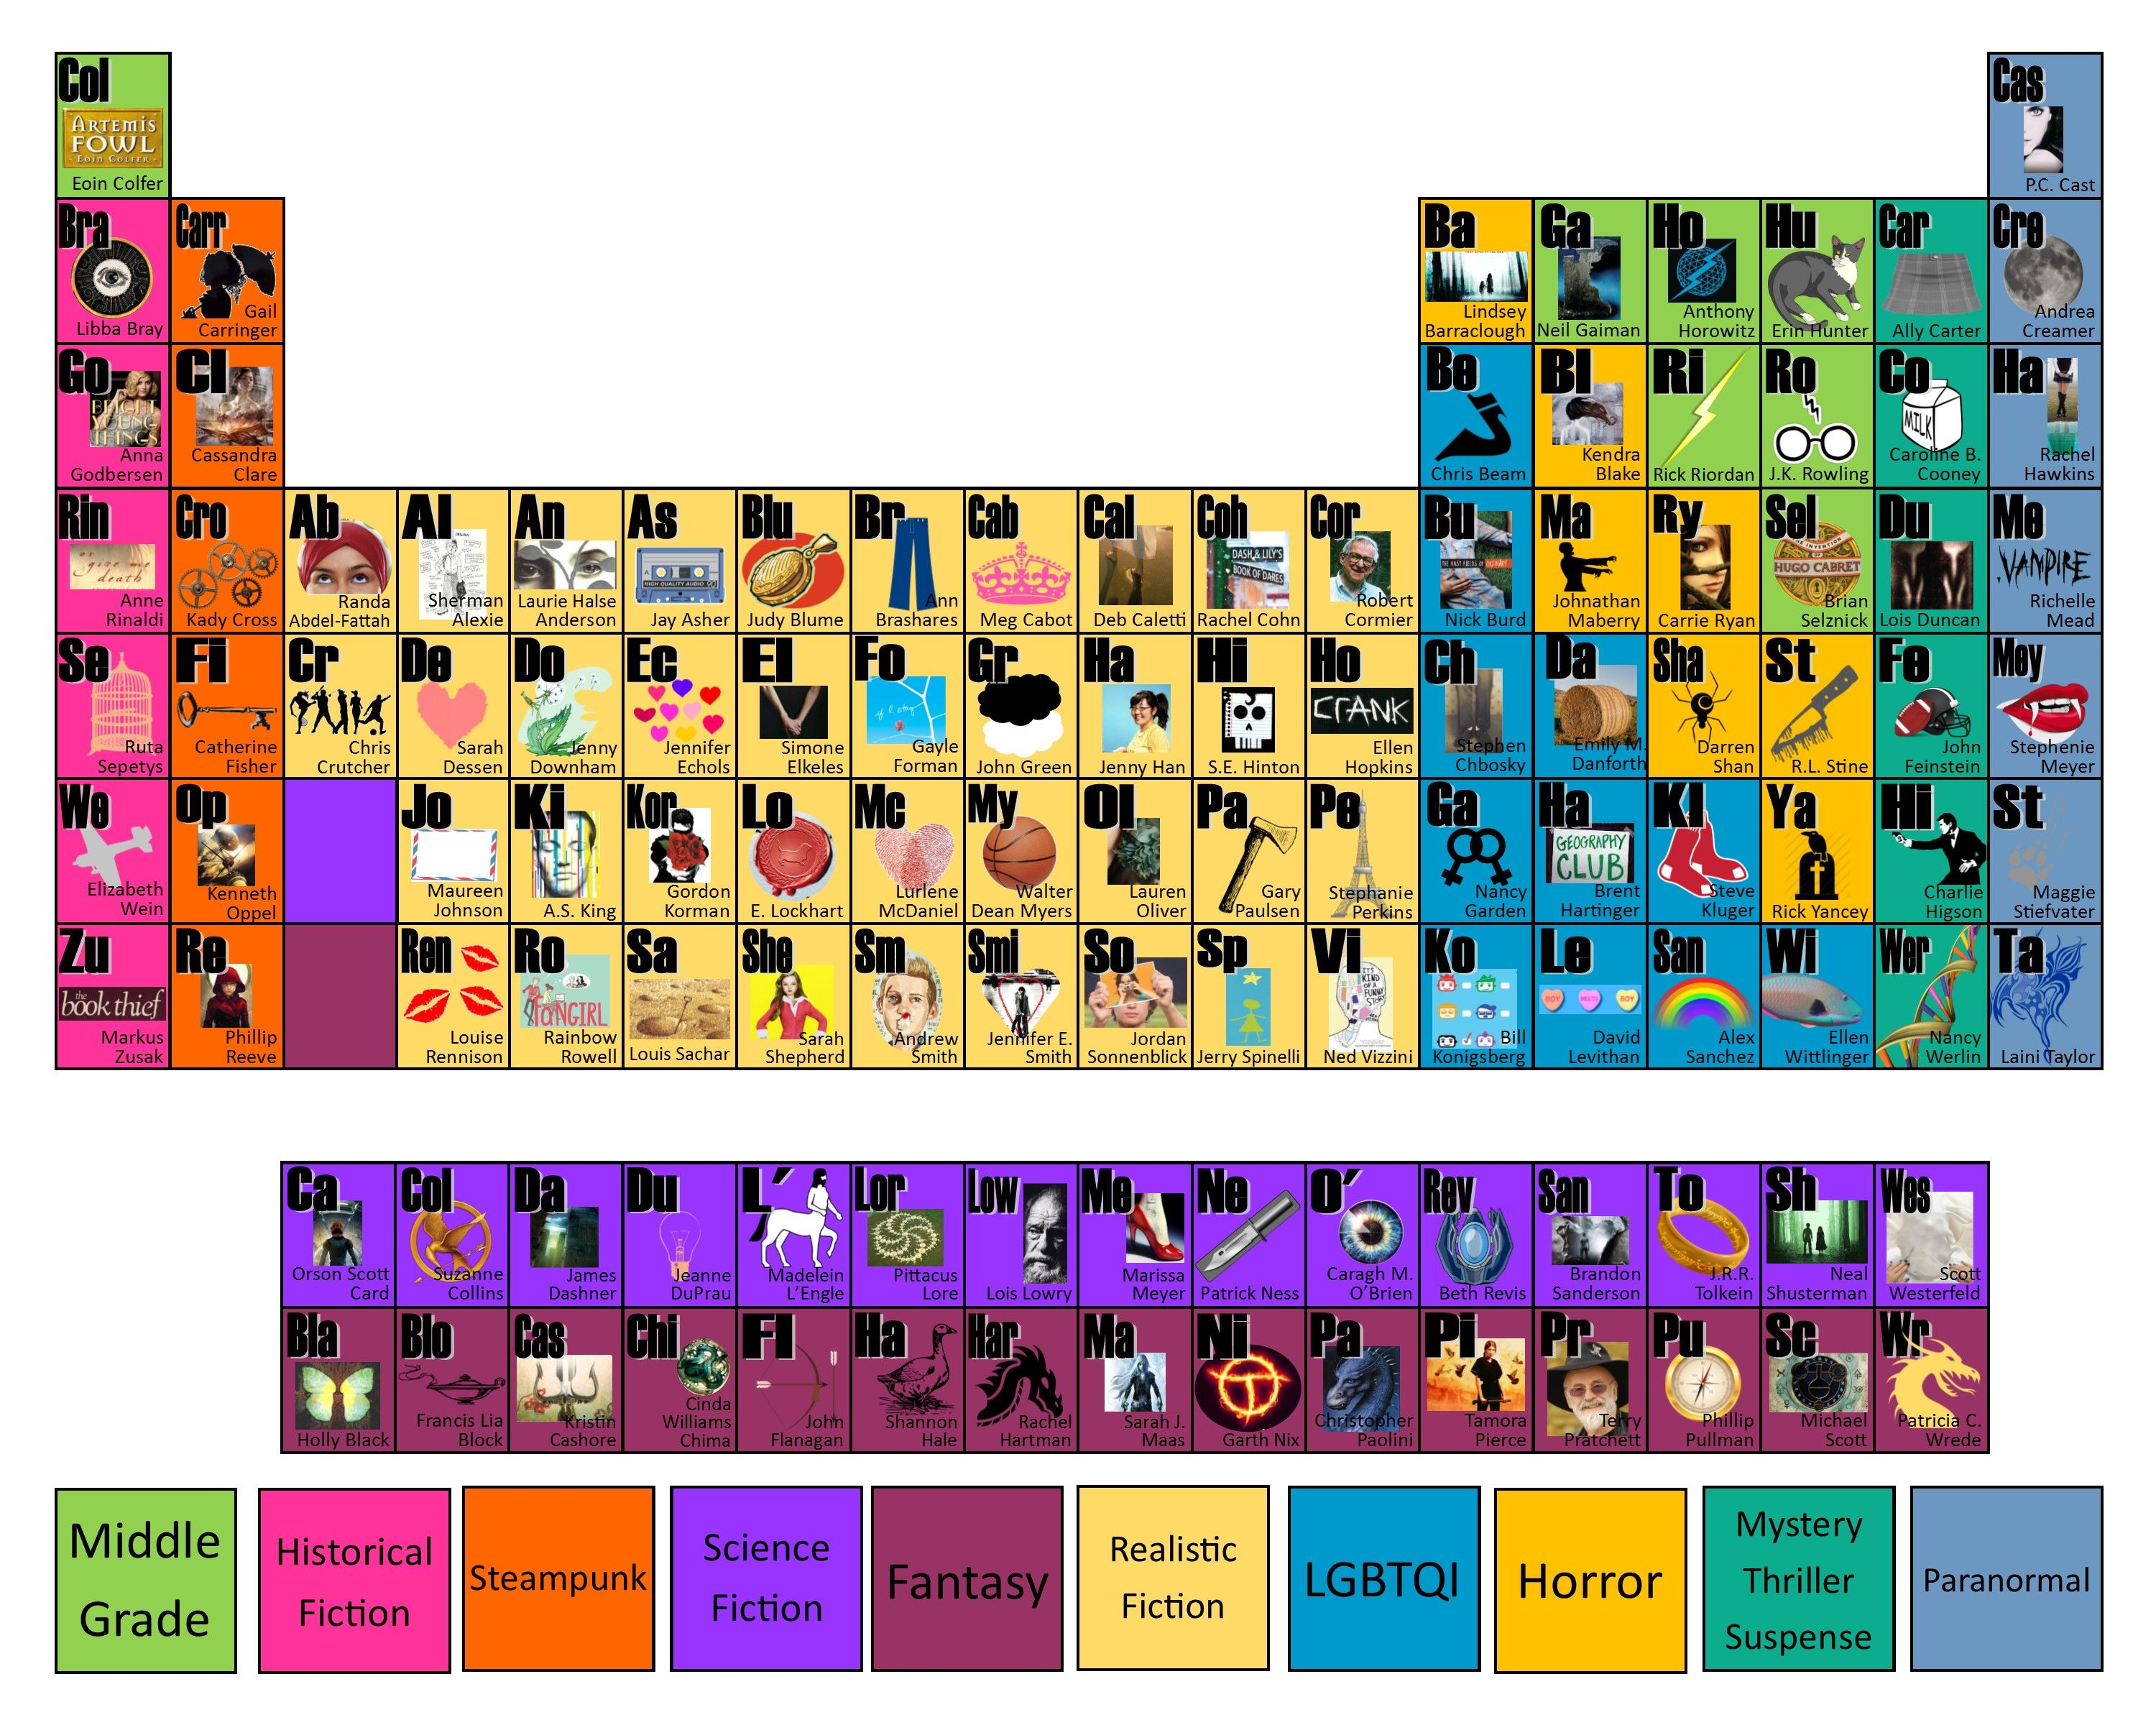 Periodic table of ya authors made by leanne posey inspired by 2014 periodic table of ya authors made by leanne posey inspired by 2014 summer readings urtaz Choice Image